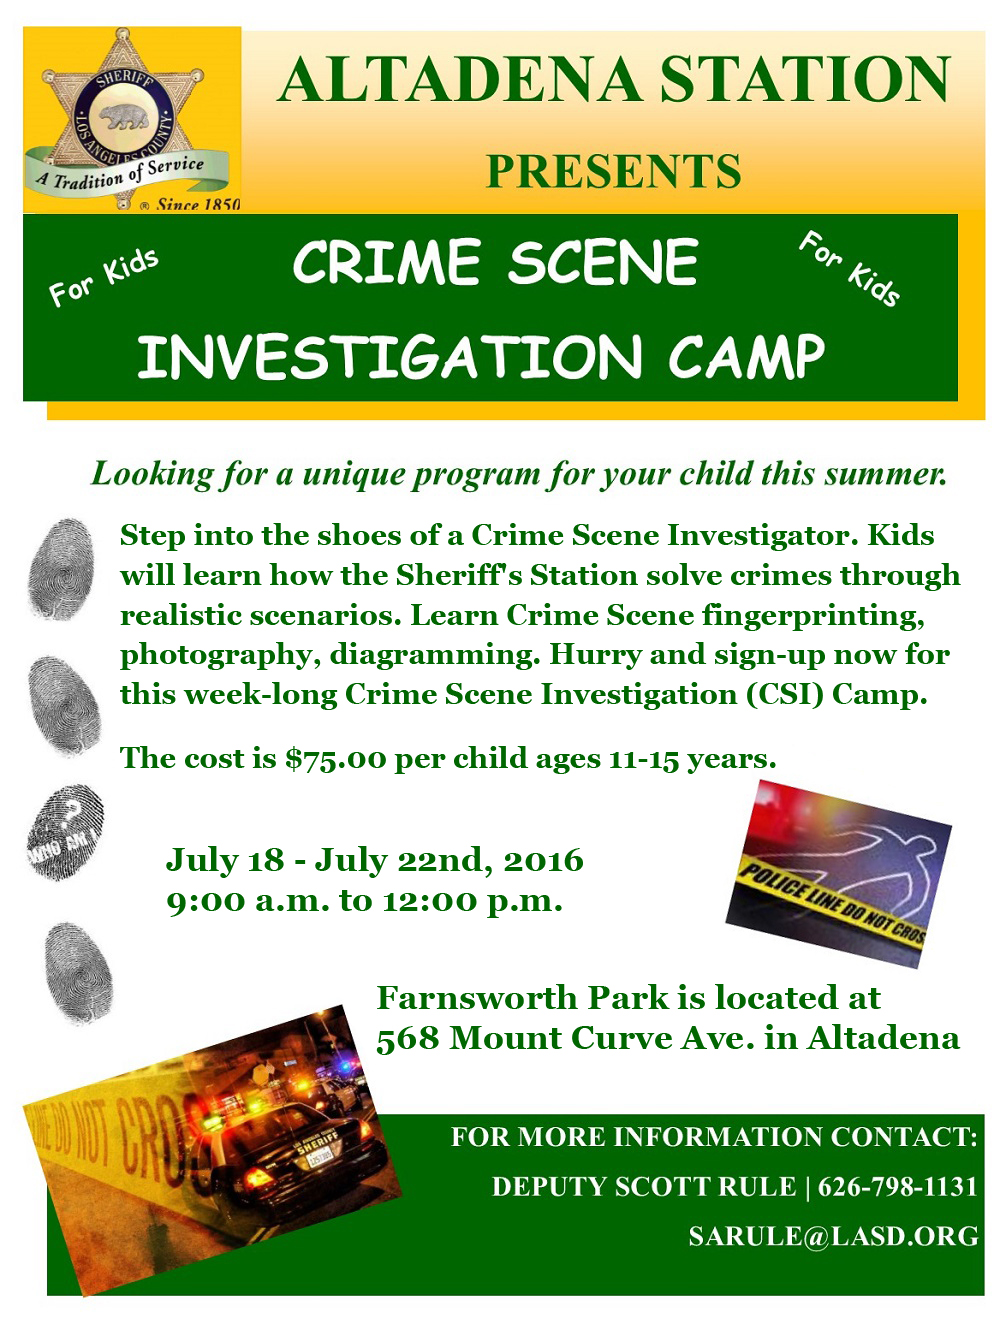 Altadena Station Crime Scene Investigation Camp for Kids